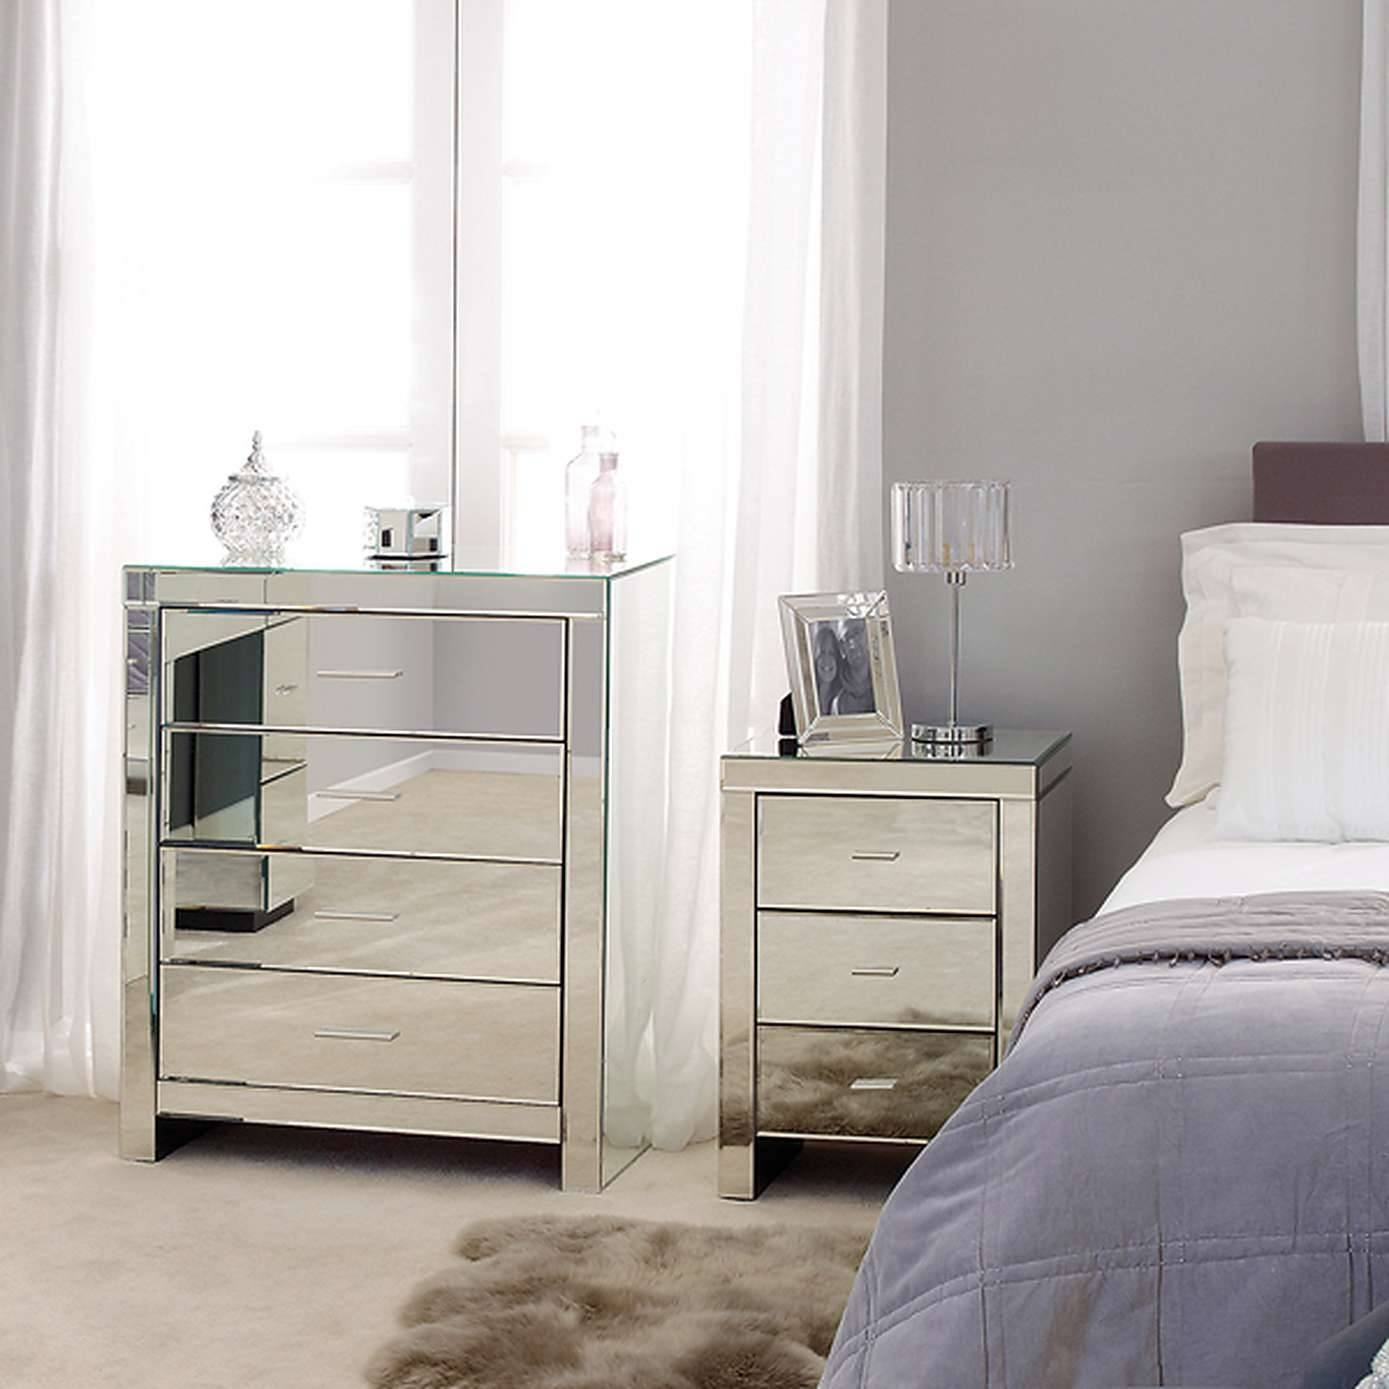 Cheap Mirrored Bedroom Furniture 143 Nice Decorating With Image Of in Cheap Mirrored Wardrobes (Image 1 of 15)